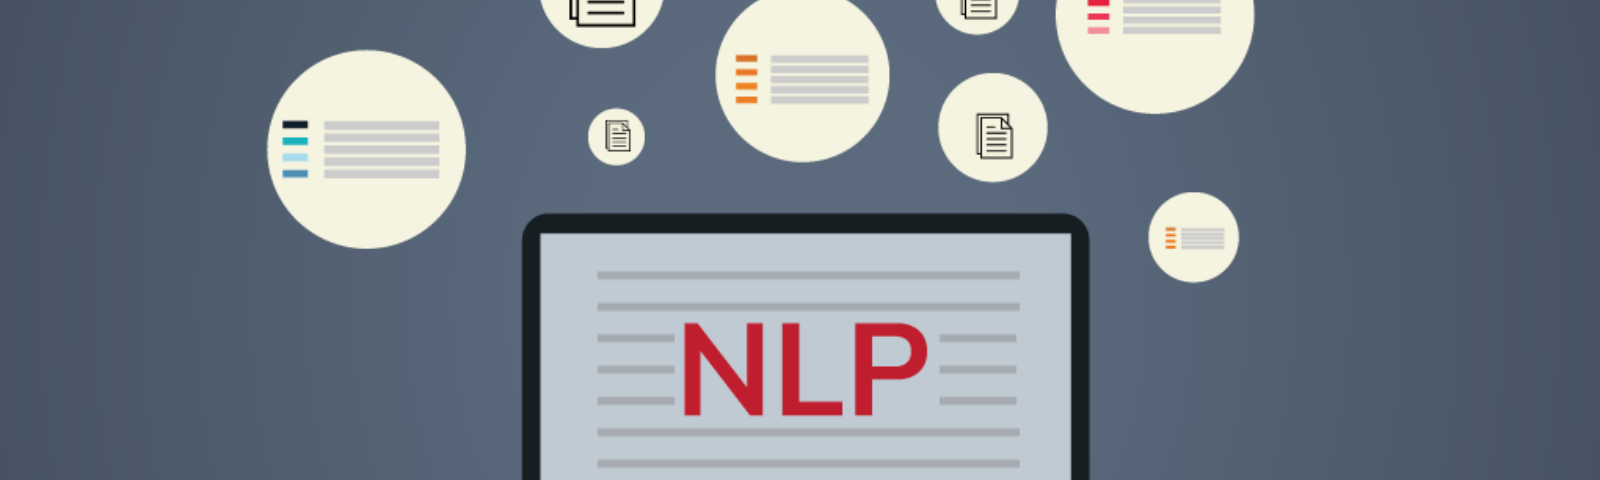 6 Tips to Optimize an NLP Topic Model for Interpretability